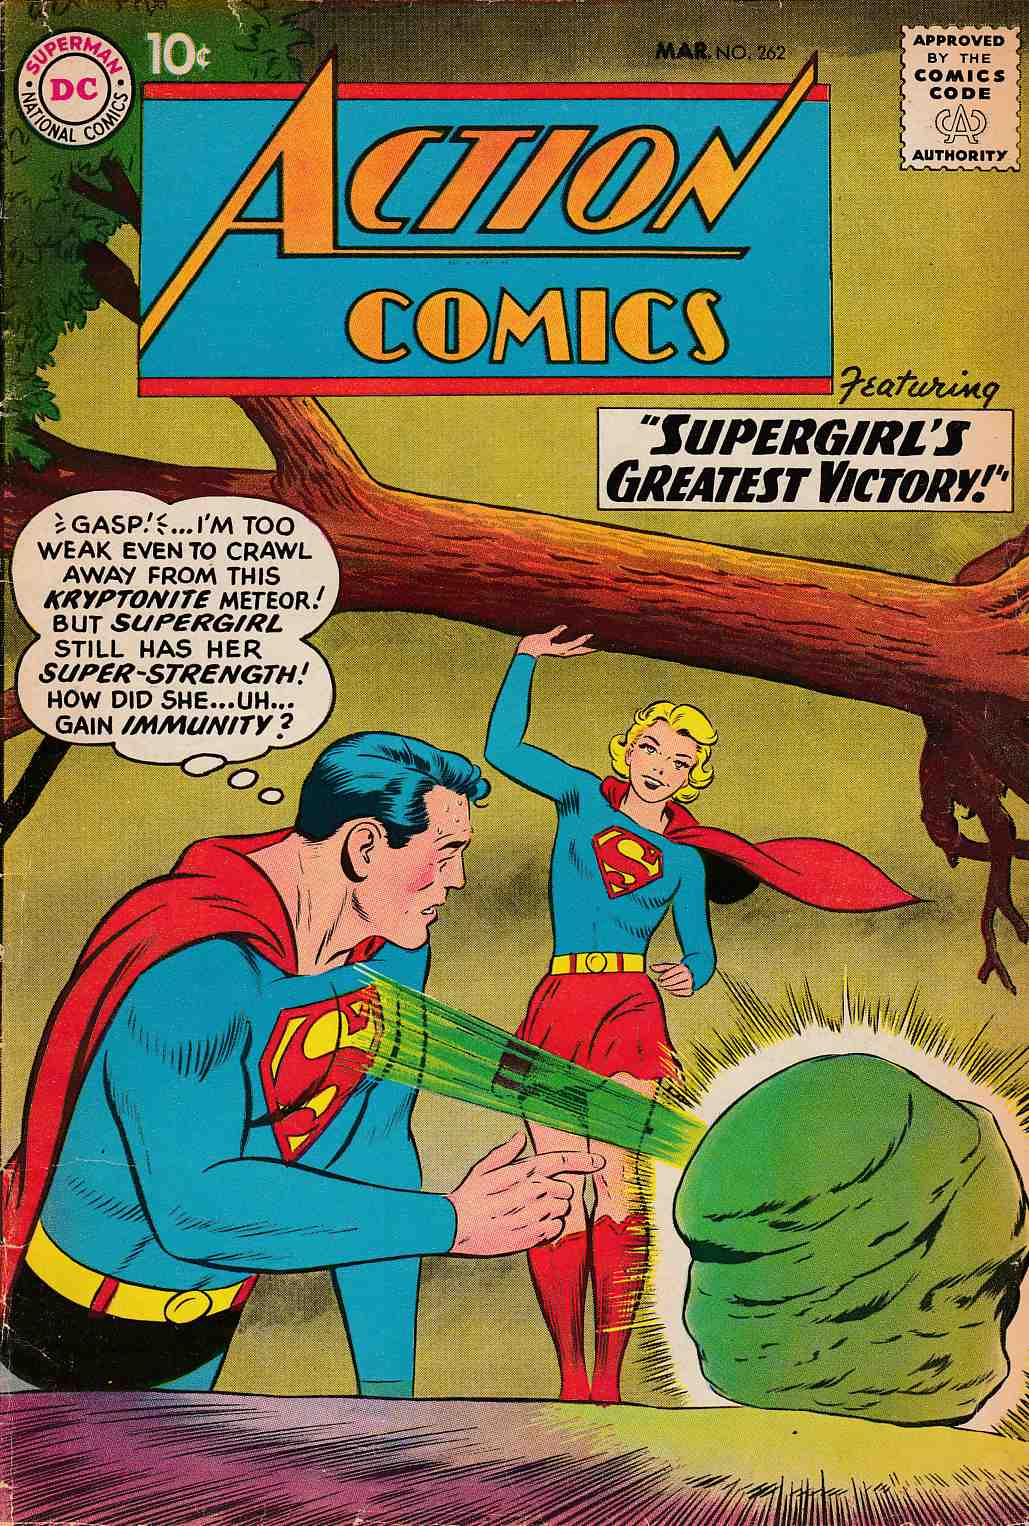 Action Comics #262 Very Good (4.0) [DC Comic] THUMBNAIL